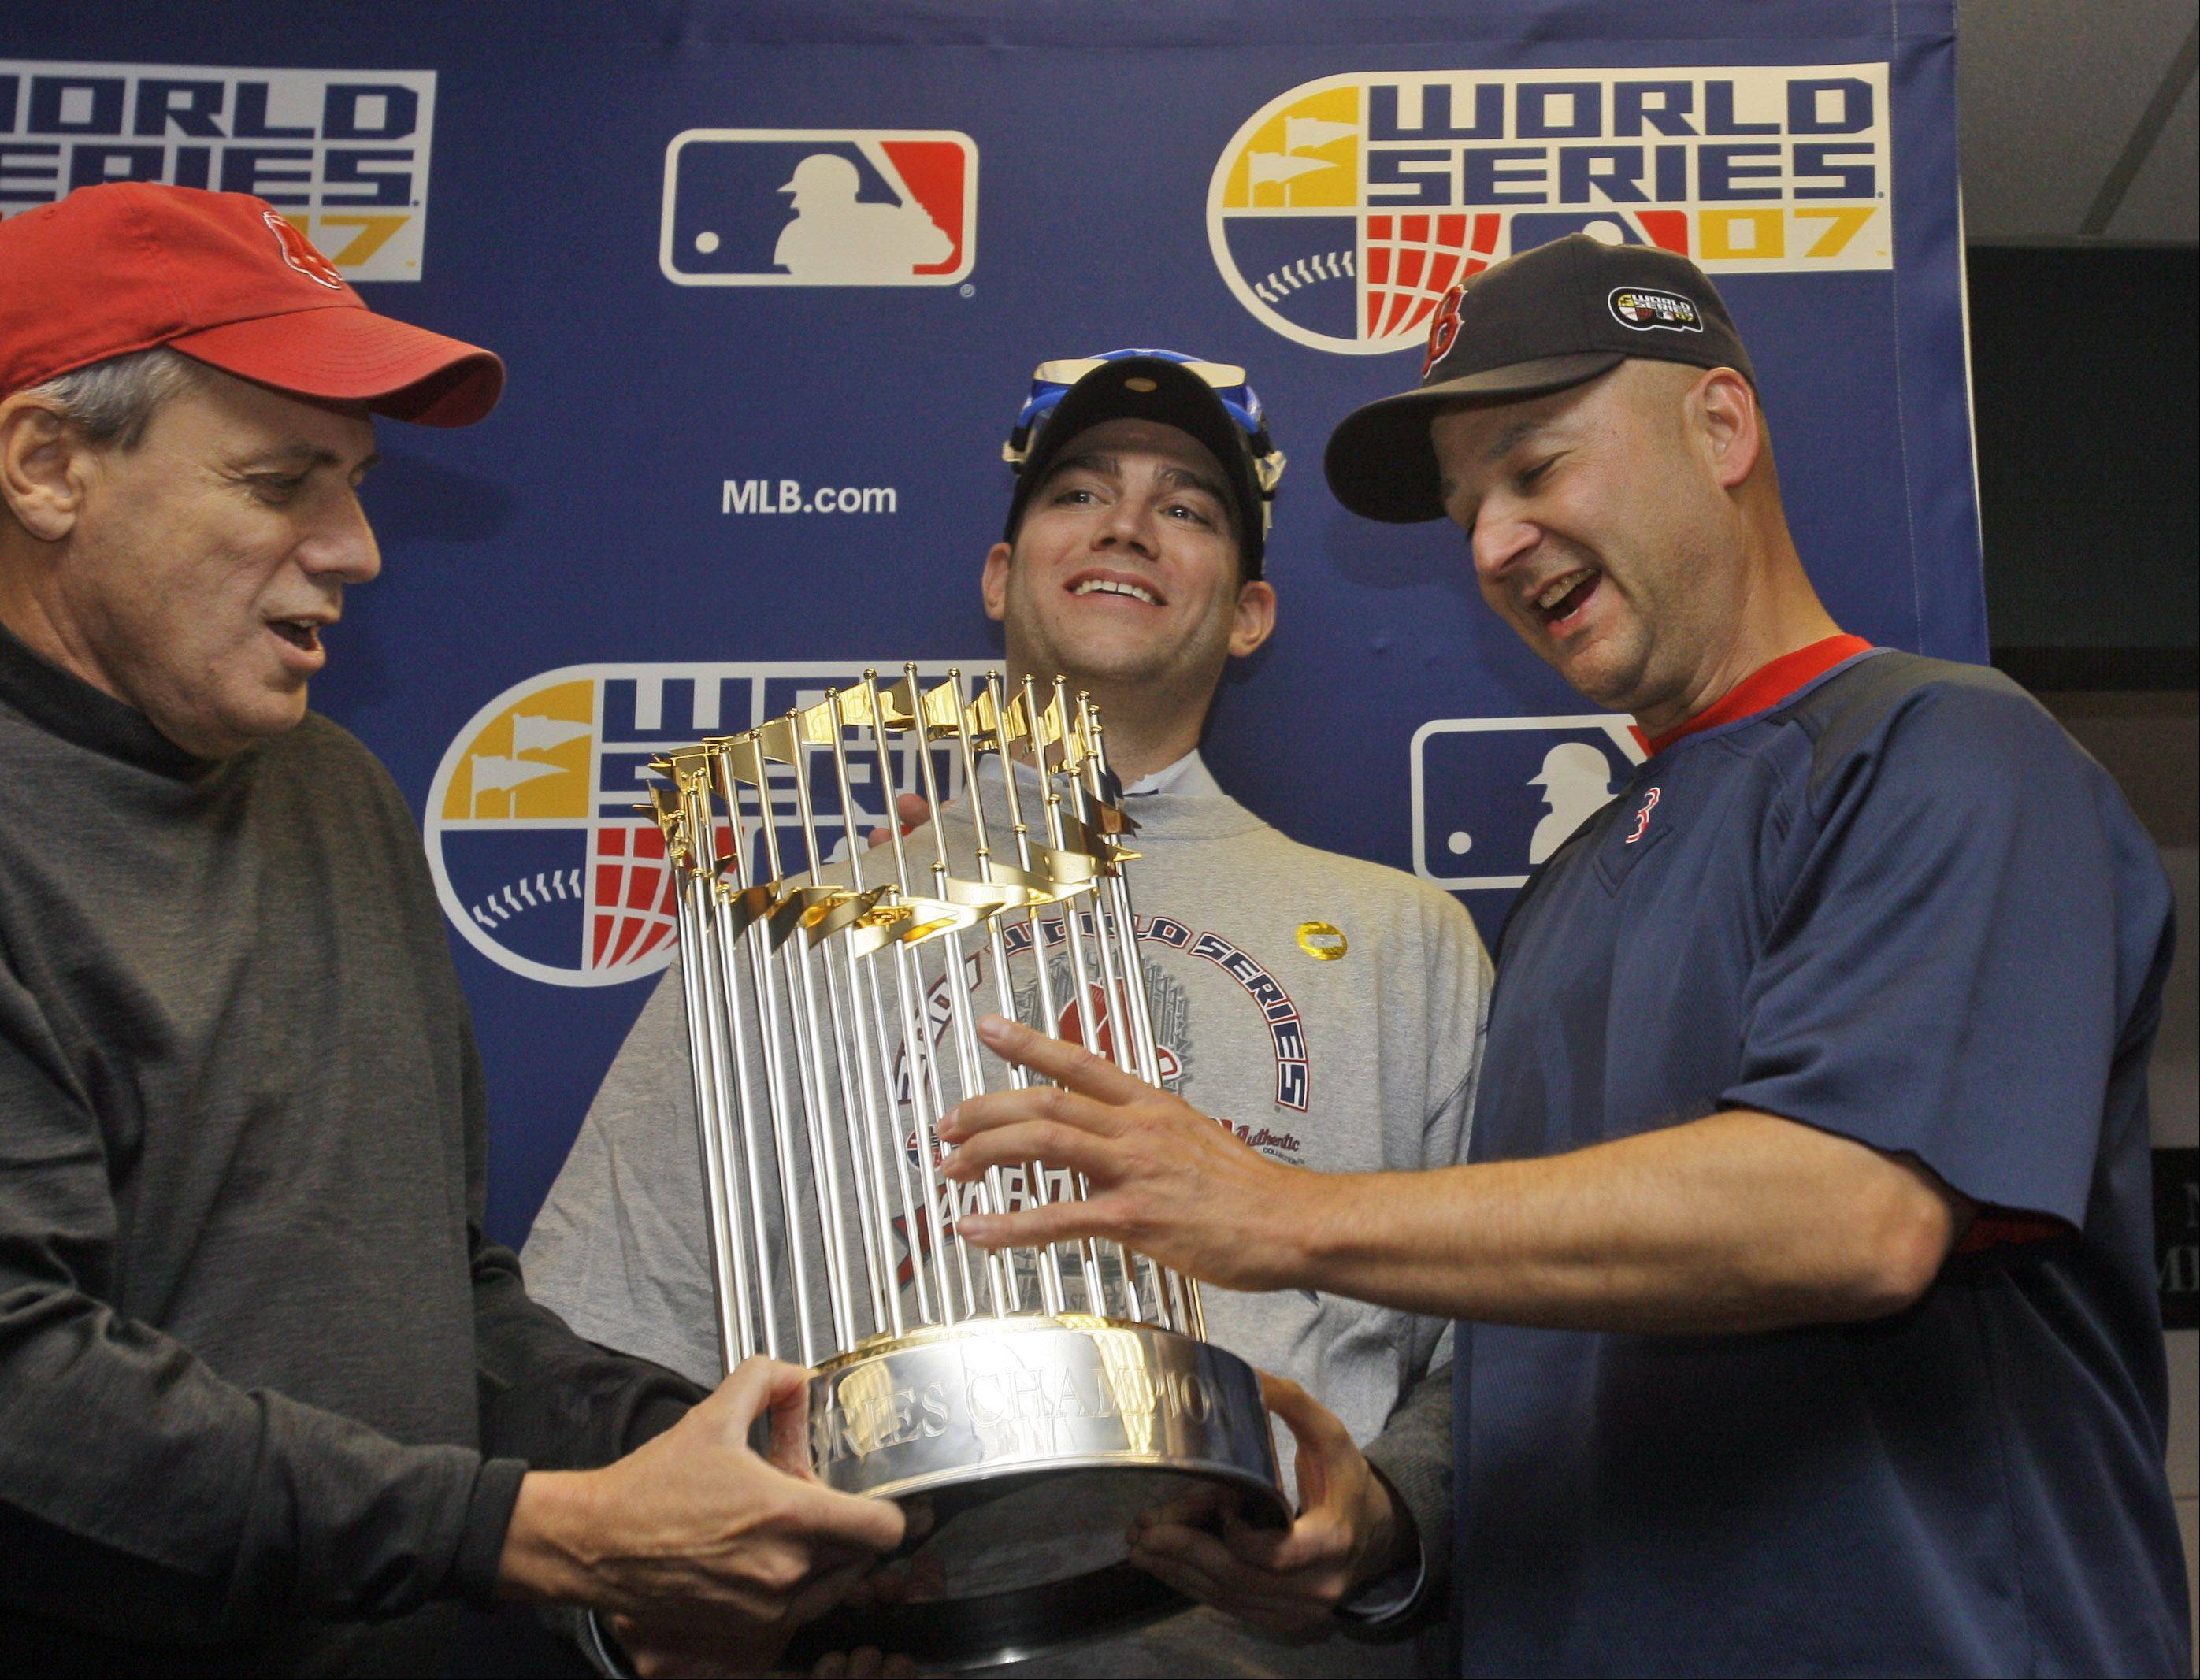 Triumphant trio dismantled. Boston Red Sox president Larry Lucchino, left, general manager Theo Epstein, and manager Terry Francona were all smiles as they held the World Series trophy after Boston beat the Colorado Rockies on Oct. 28, 2007 in Denver to sweep the series. Now only Lucchino remains with the franchise with Francona stepping down and Epstein headed to Chicago to run the Cubs.